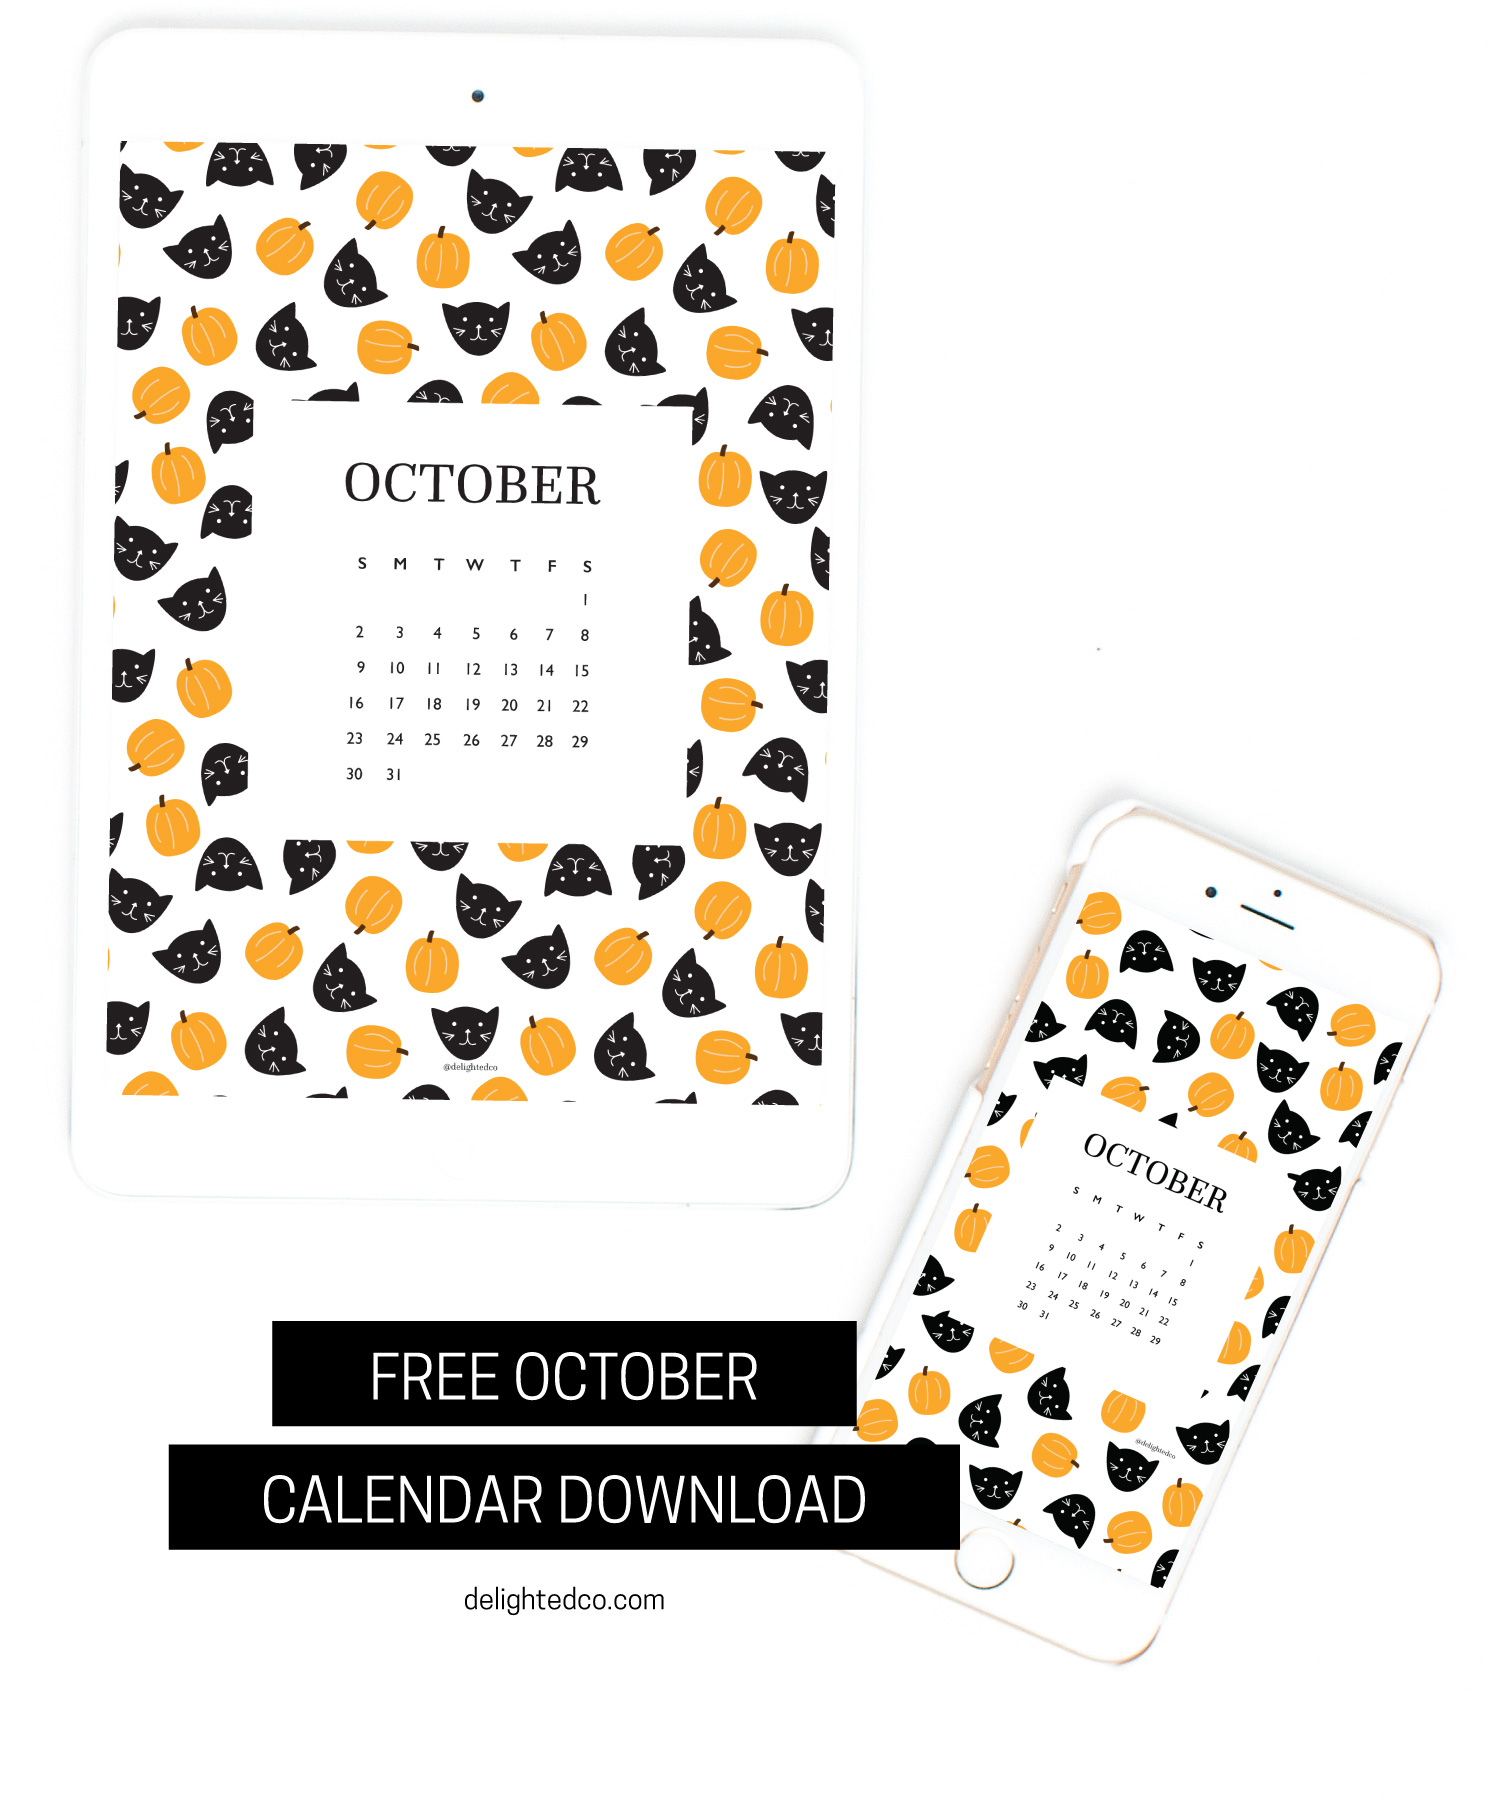 October Freebie: Download your October tech wallpaper calendars | delightedco.com